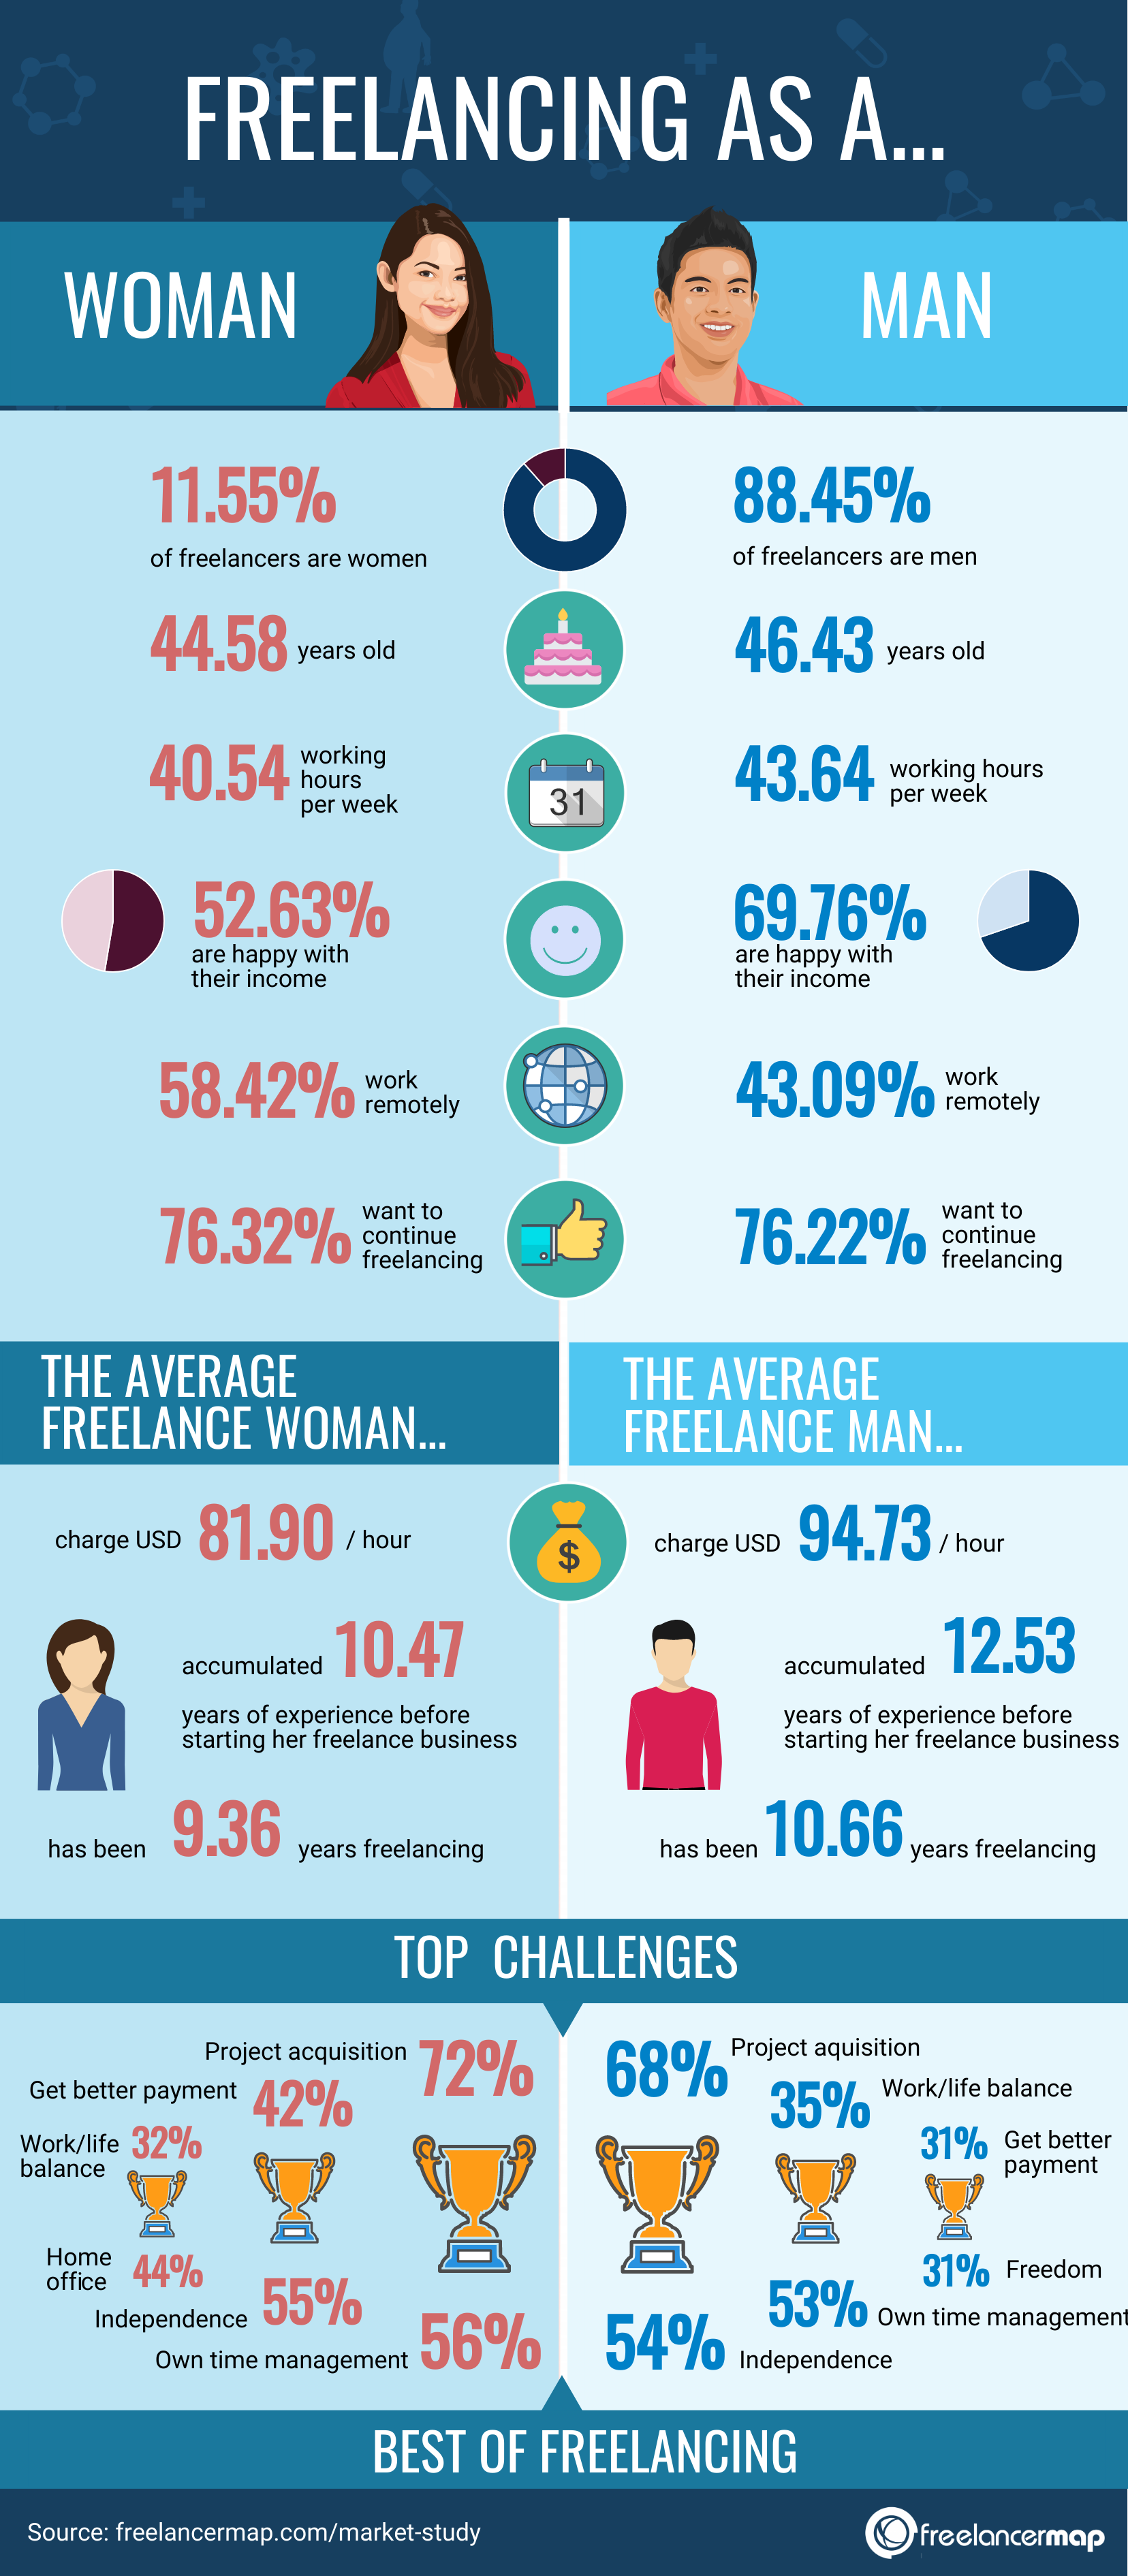 Freelancing in IT - Men vs Women Comparison